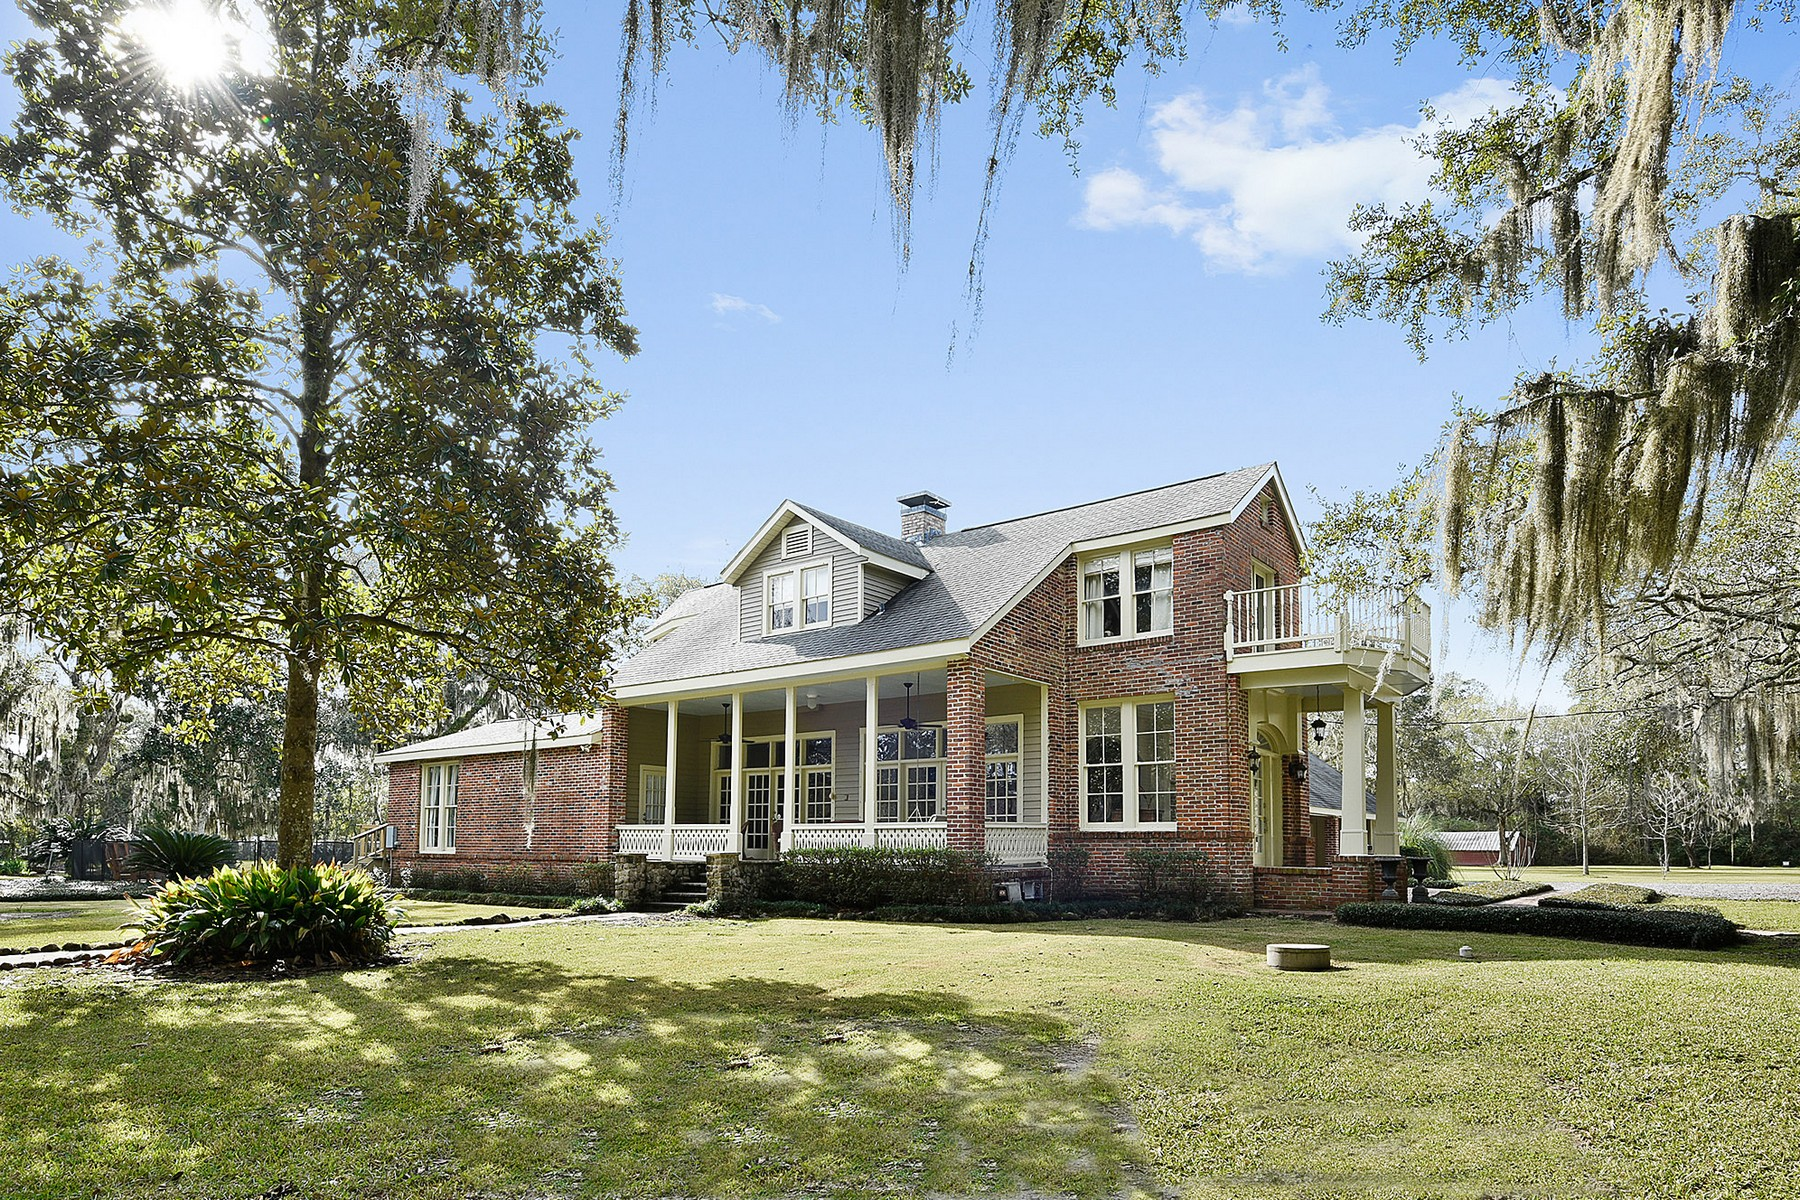 Single Family Home for Sale at 34600 Treasure Cove Lane, Slidell 34600 Treasure Cove Ln Slidell, Louisiana 70460 United States